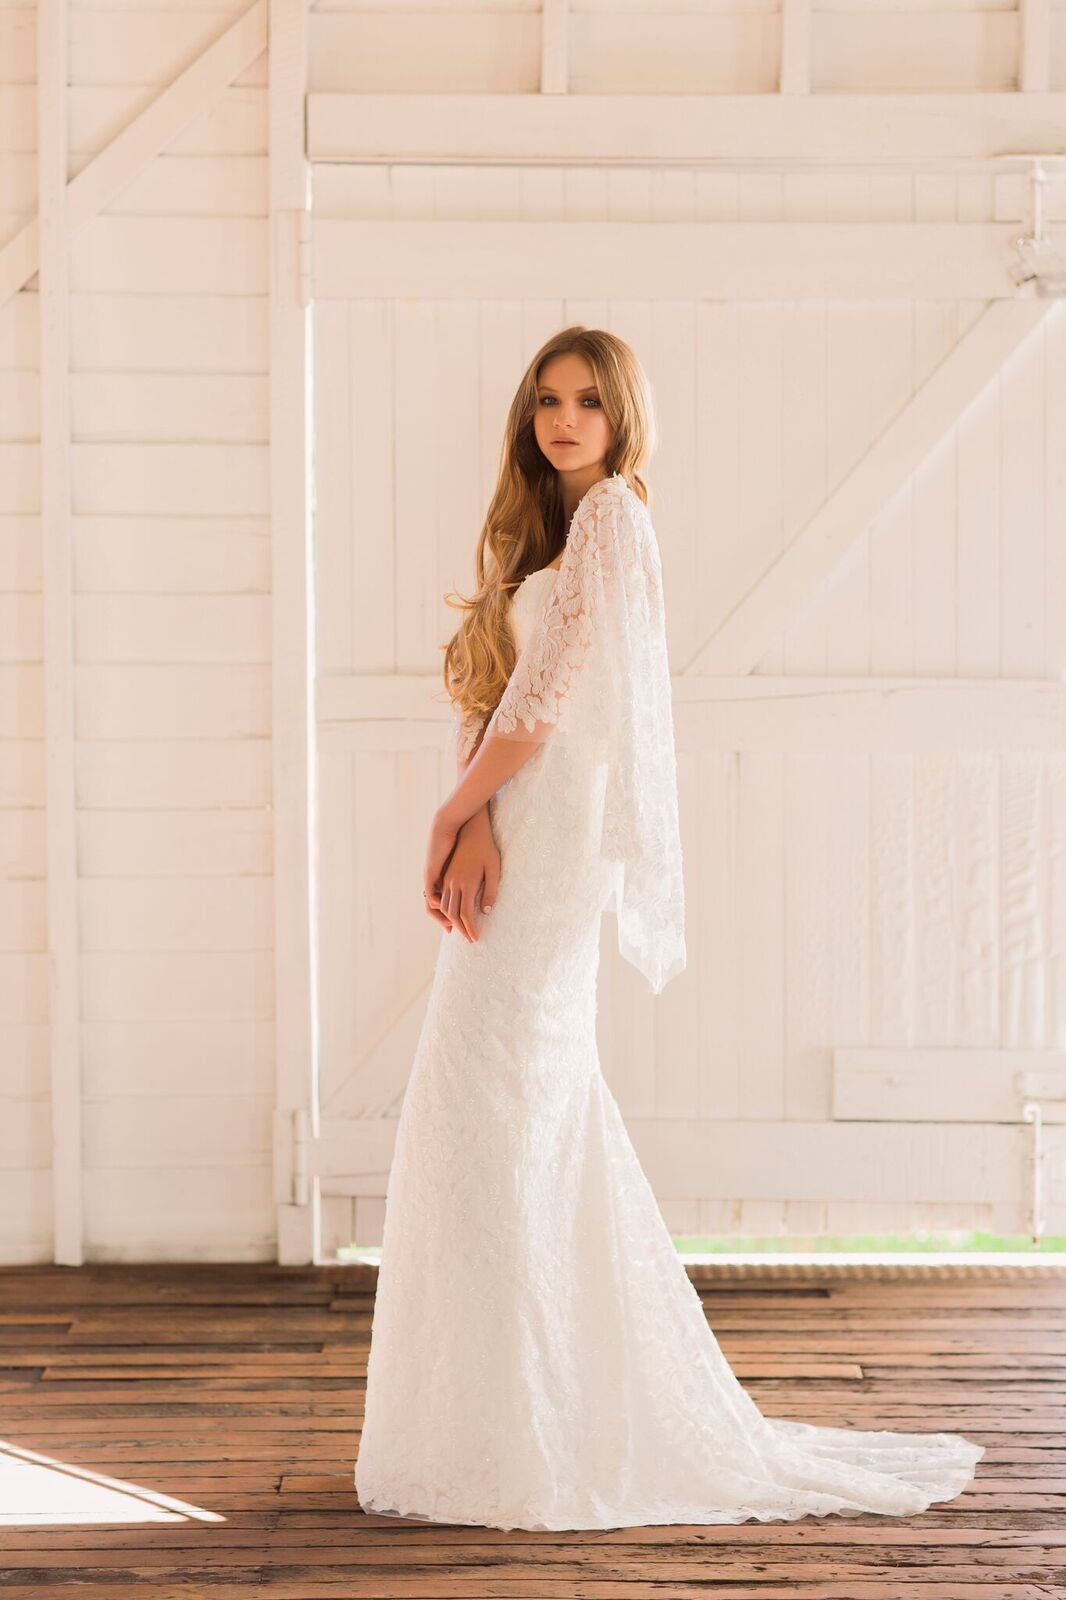 'Gwen' -  strapless sheath gown with ivory embroidered tulle overlay long train and detachable cape.